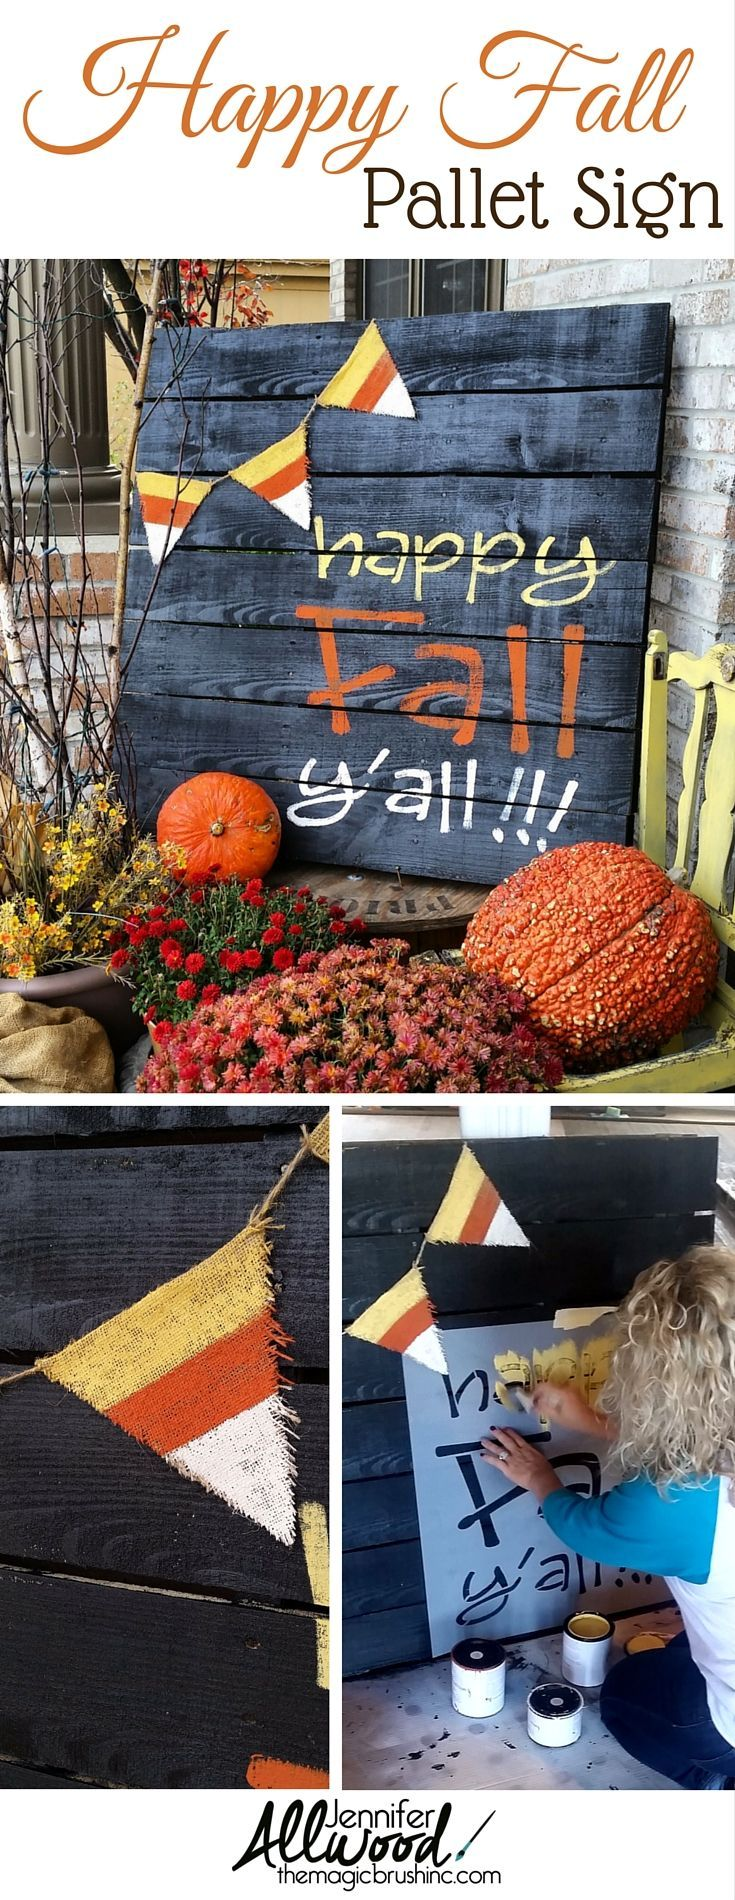 Another Painted Fall Pallet Project: Happy Fall Y'all